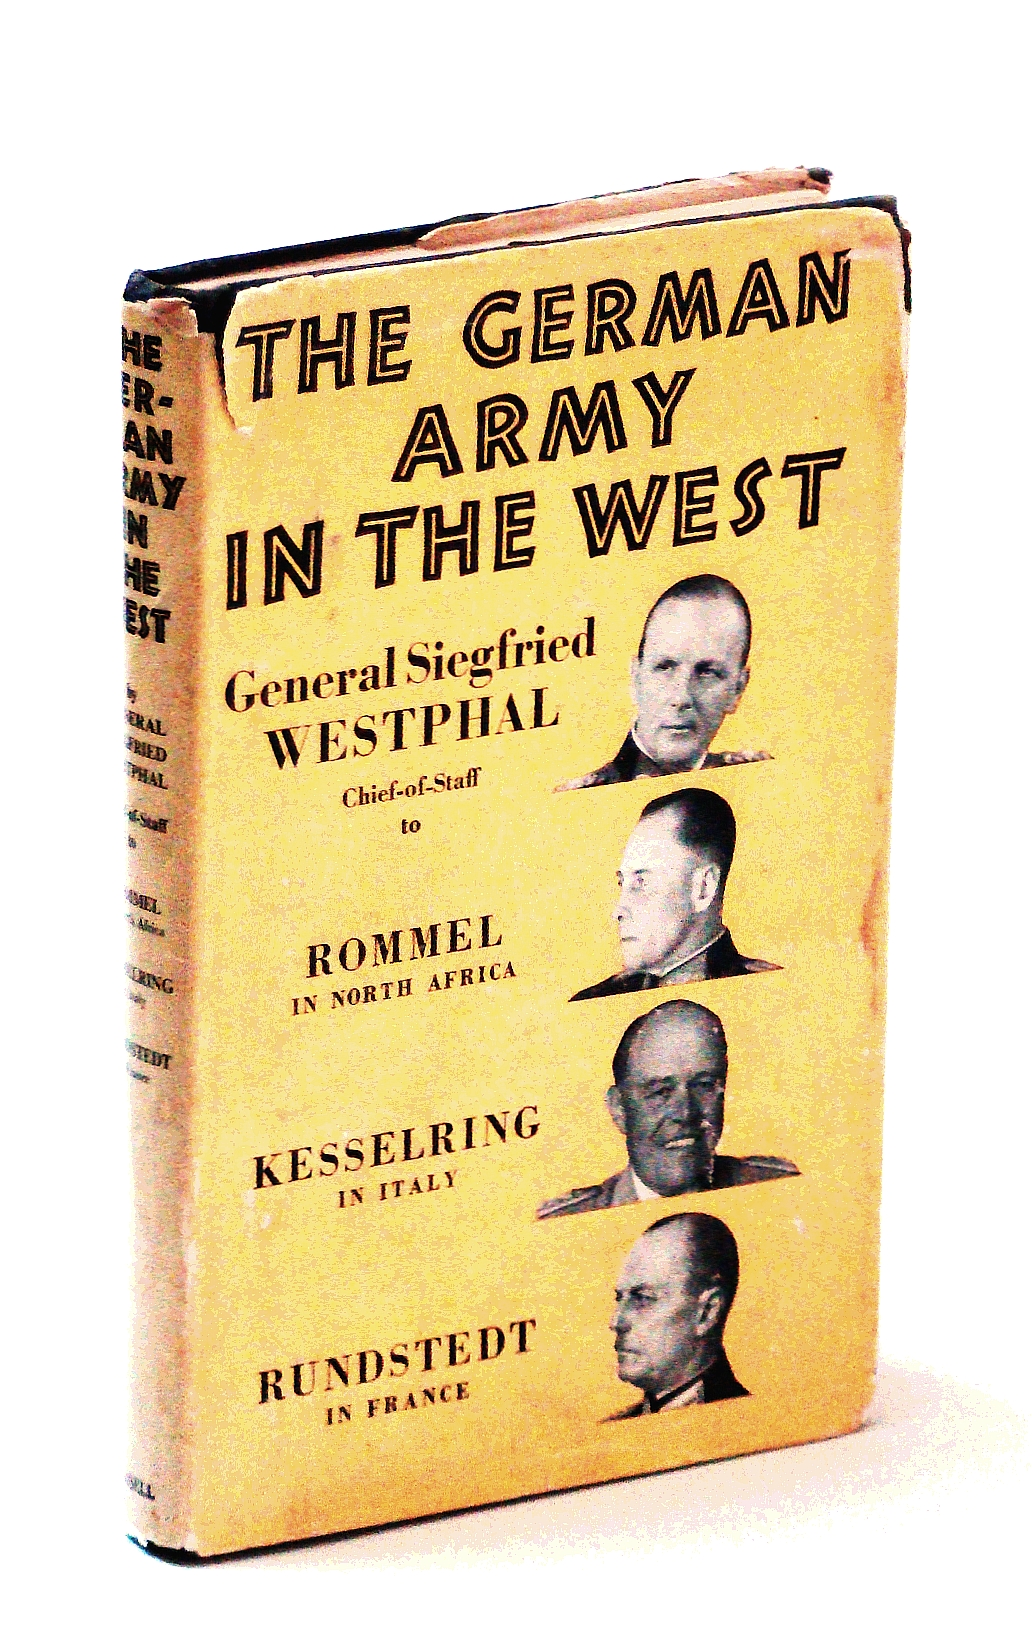 The German Army in the West